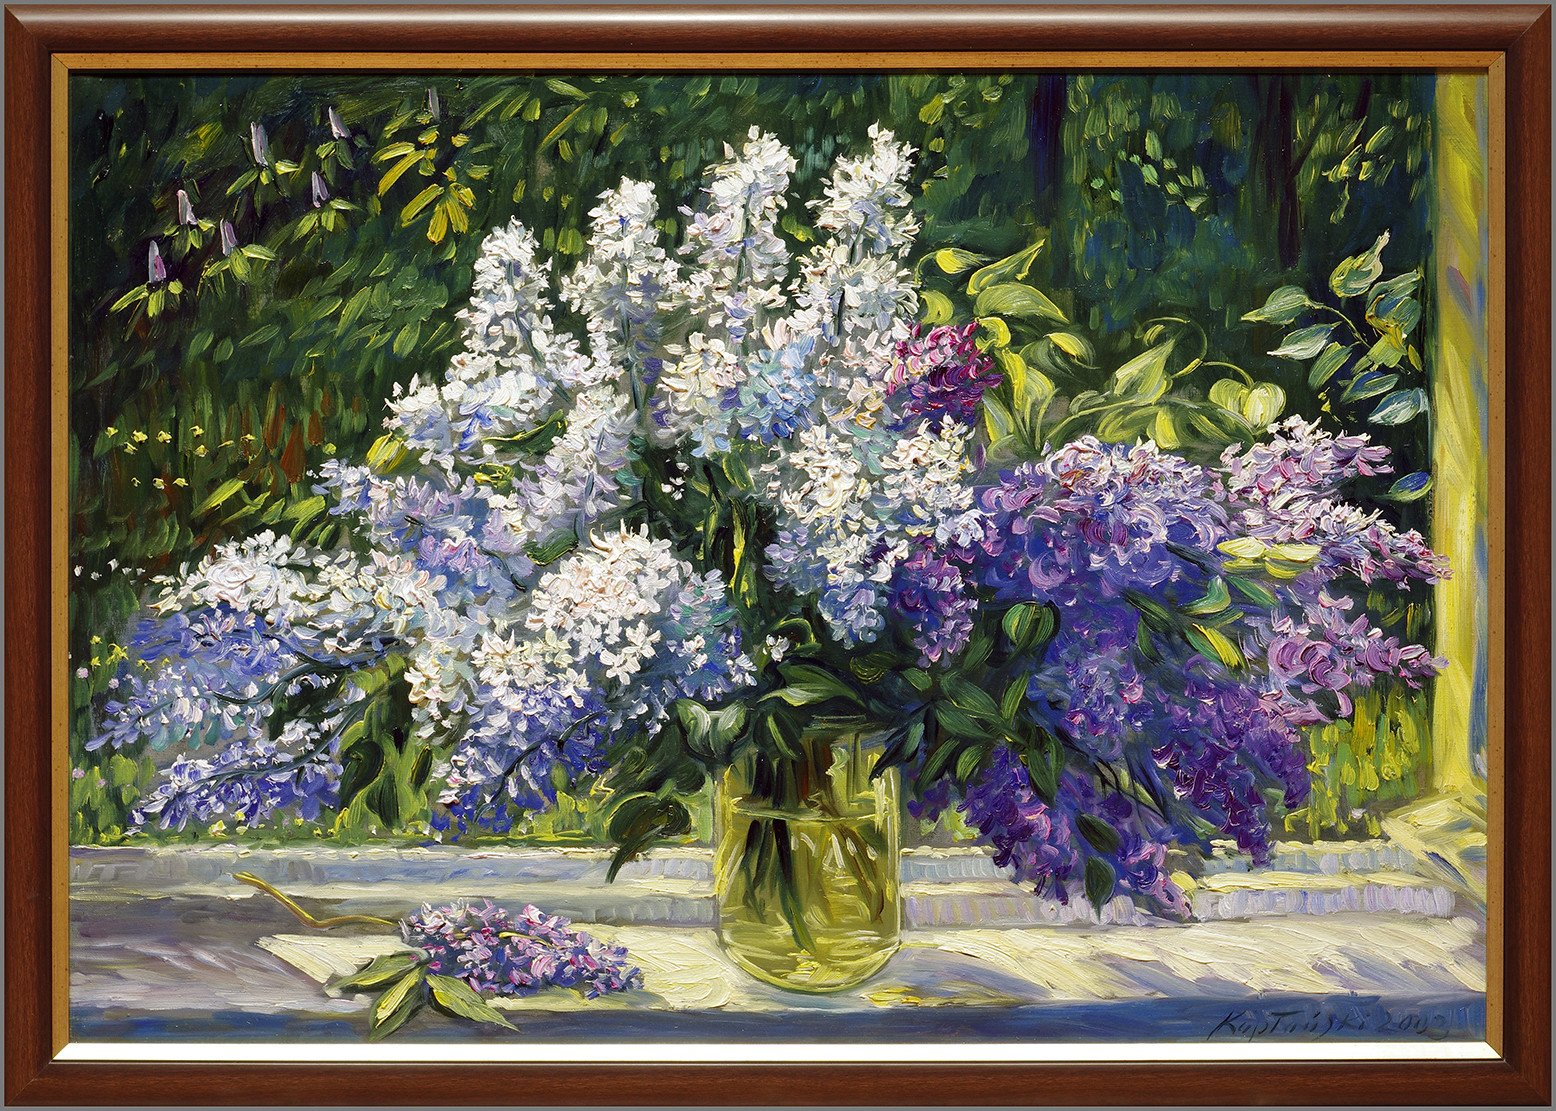 Flowers, Oil Painting by J. Kapłański, 2003s